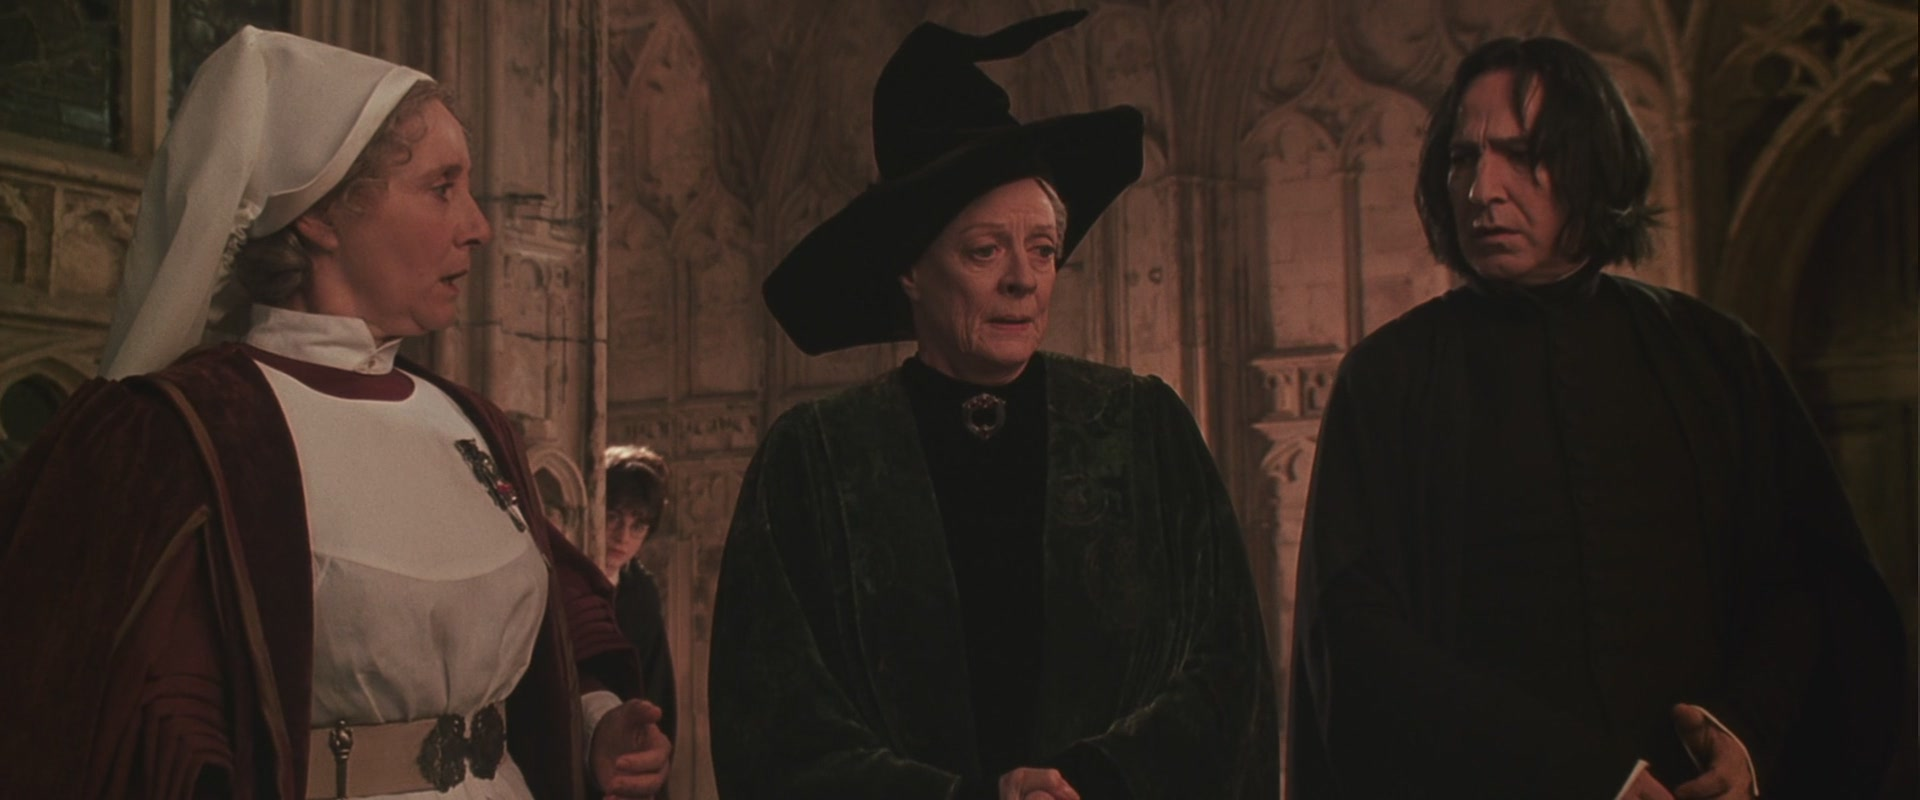 chamber of secrets perfect images are great